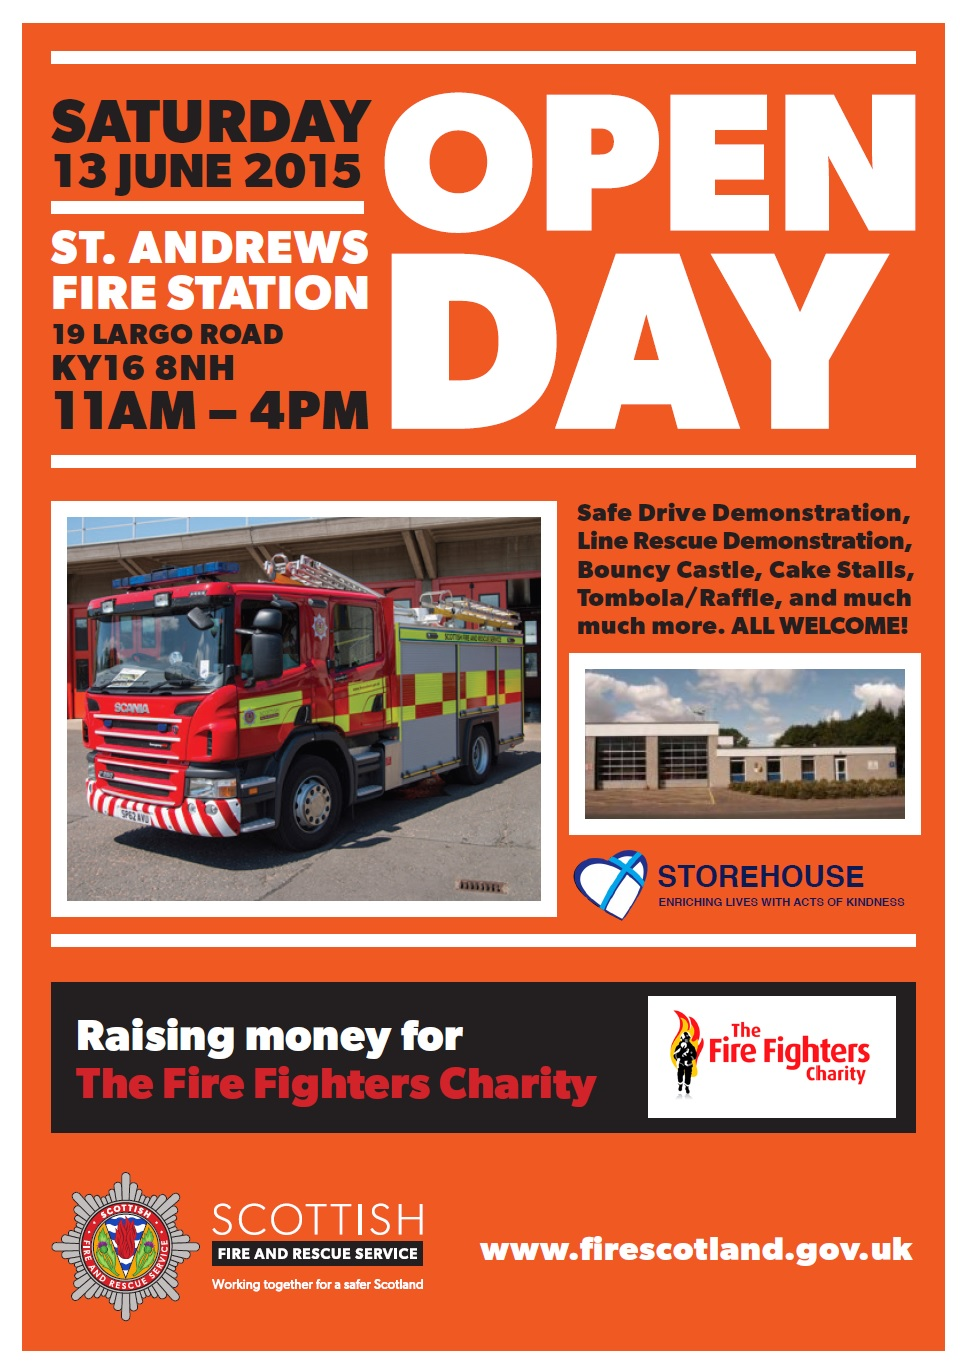 Open day at St Andrews fire station